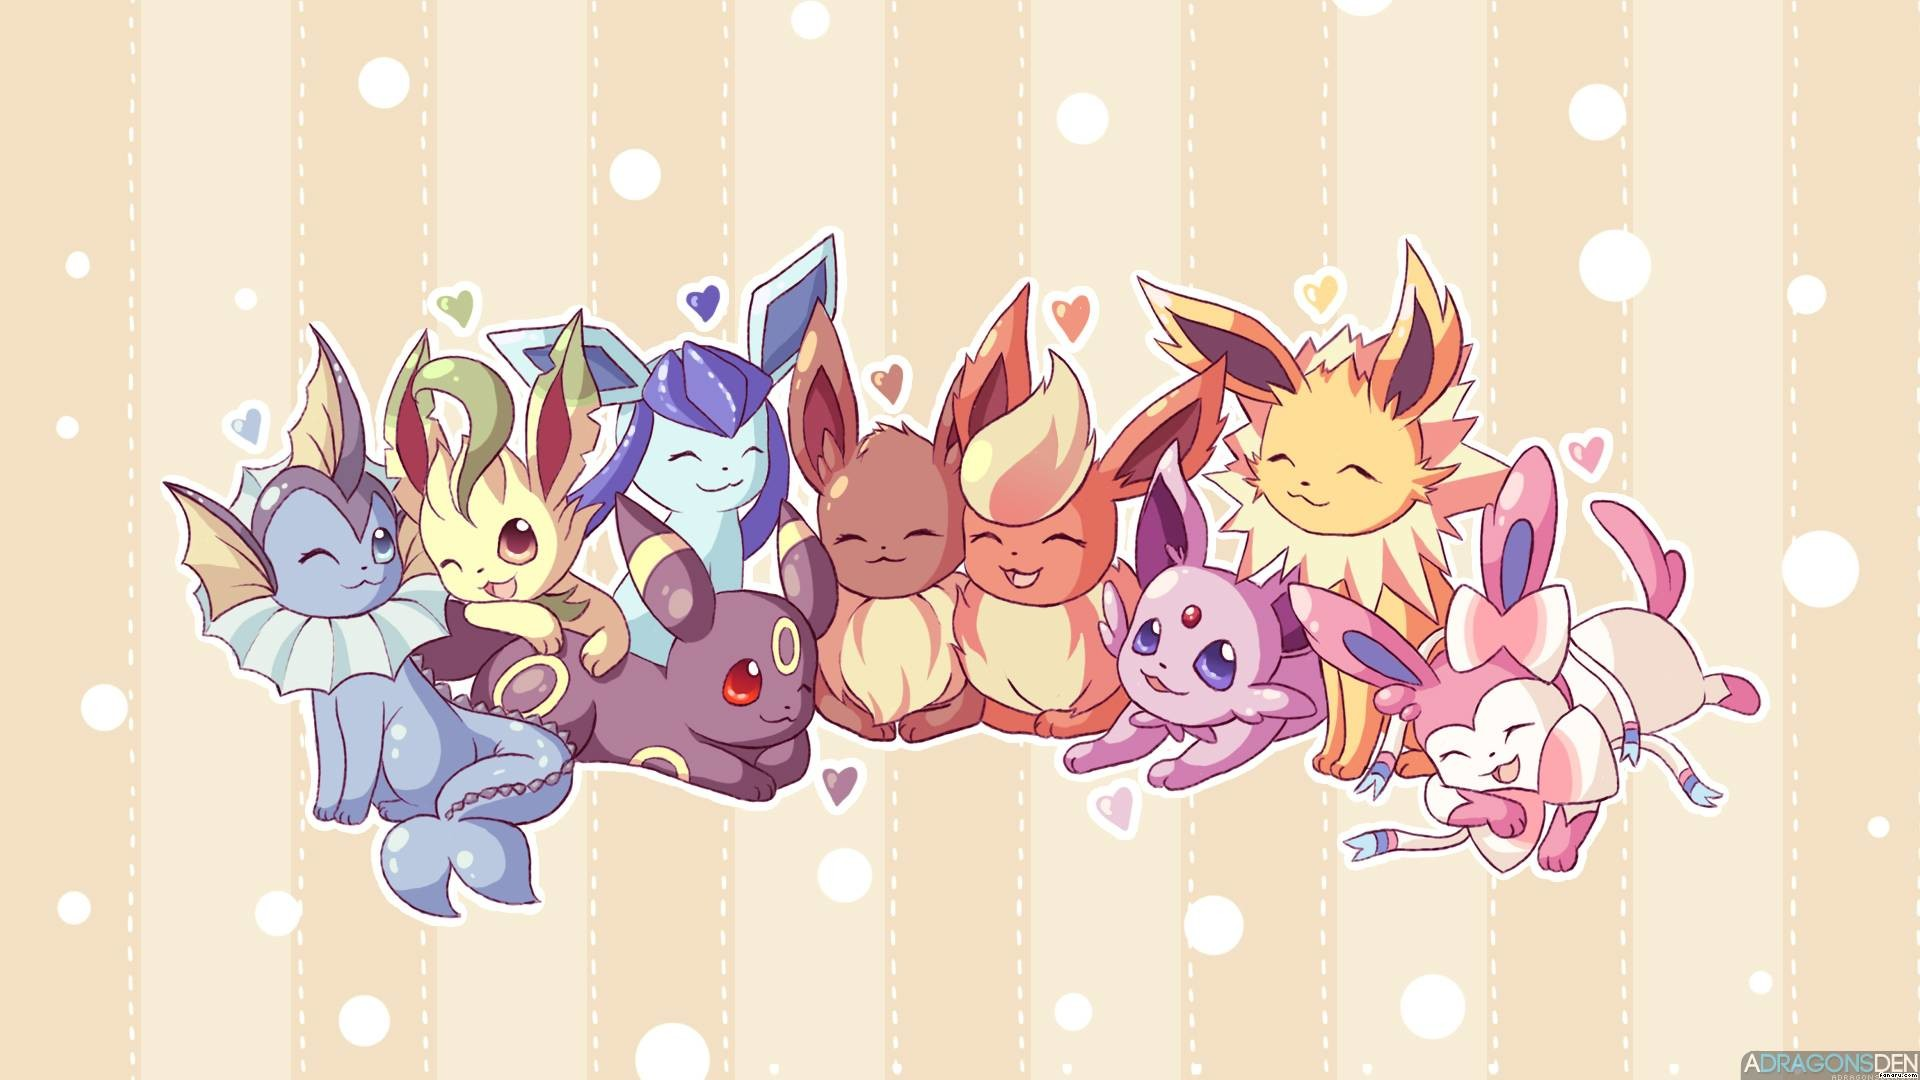 Res: 1920x1080, Cutest Pokemon images Cute Pokemon Wallpaper HD wallpaper and background  photos